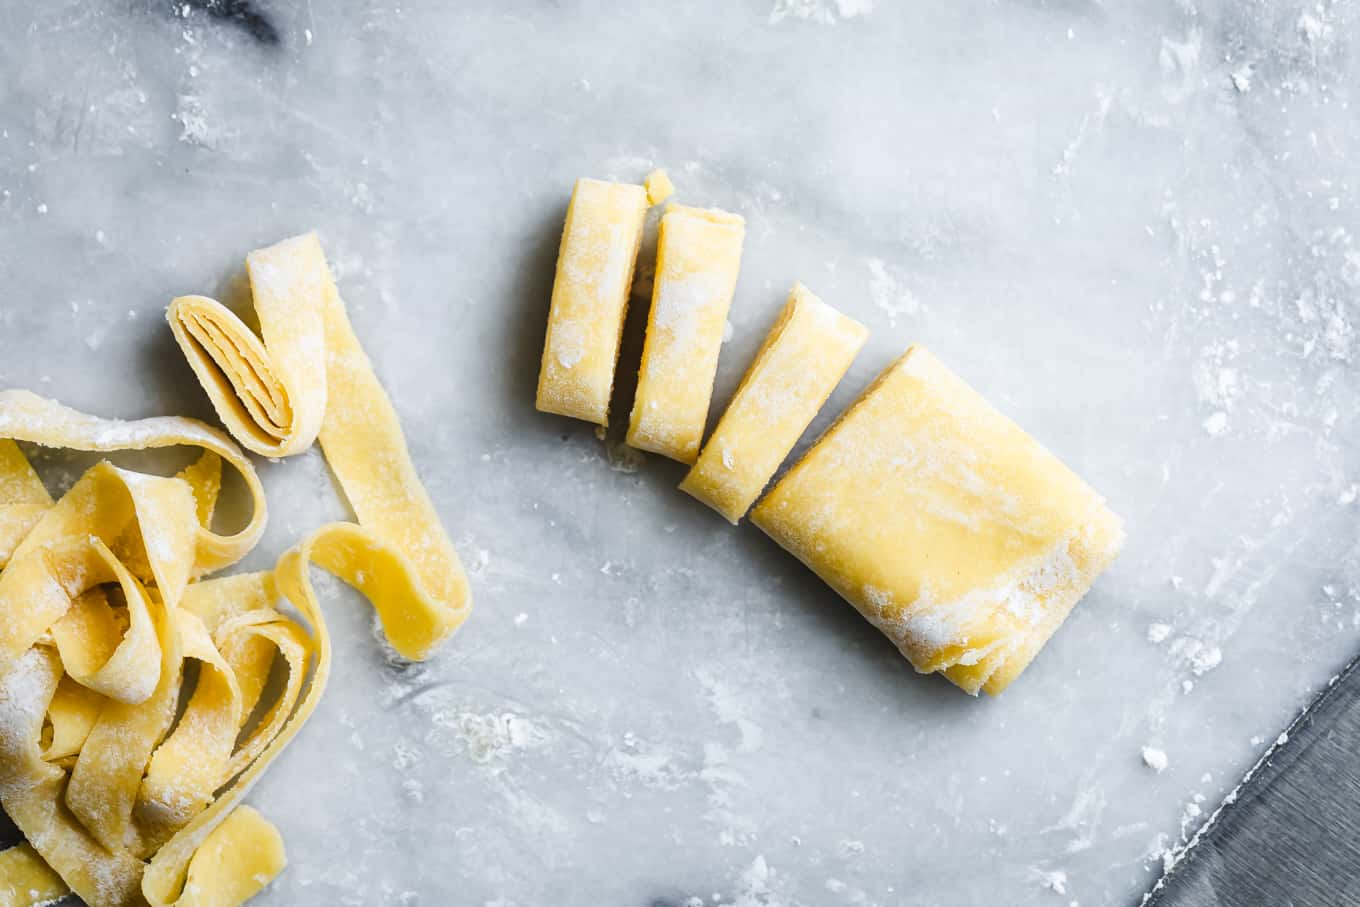 Homemade Gluten-Free Fresh Pasta